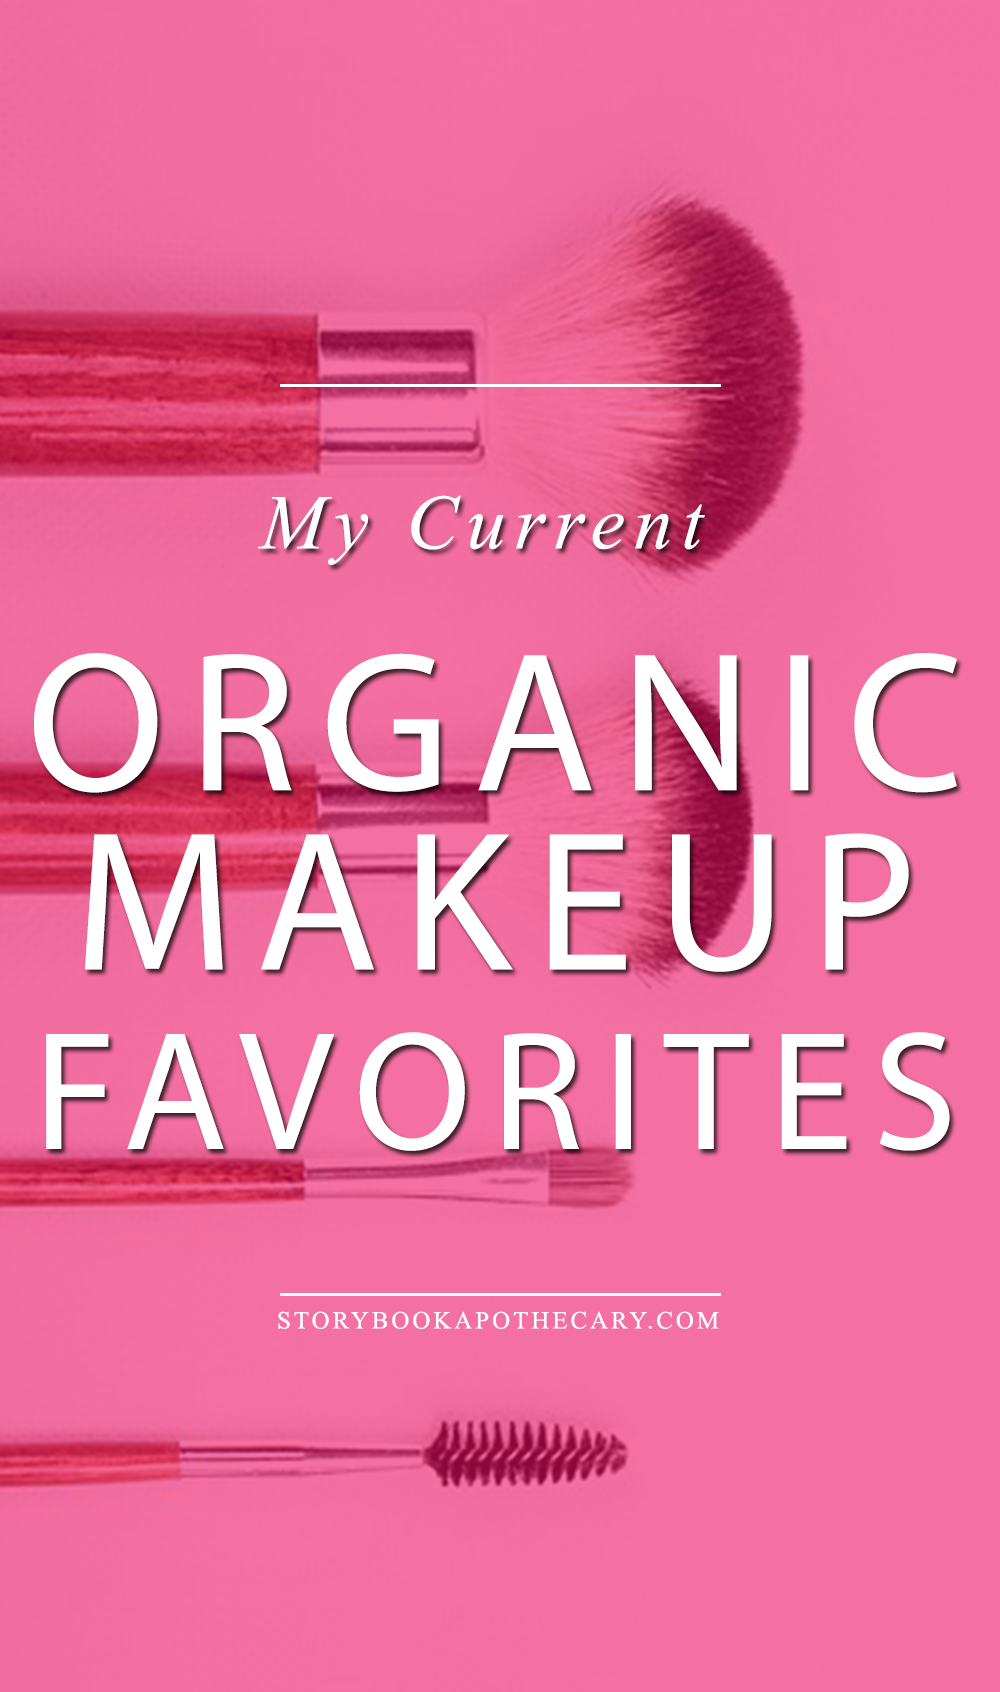 My Current Must Have Makeup Palettes: My Current Organic Makeup Favorites